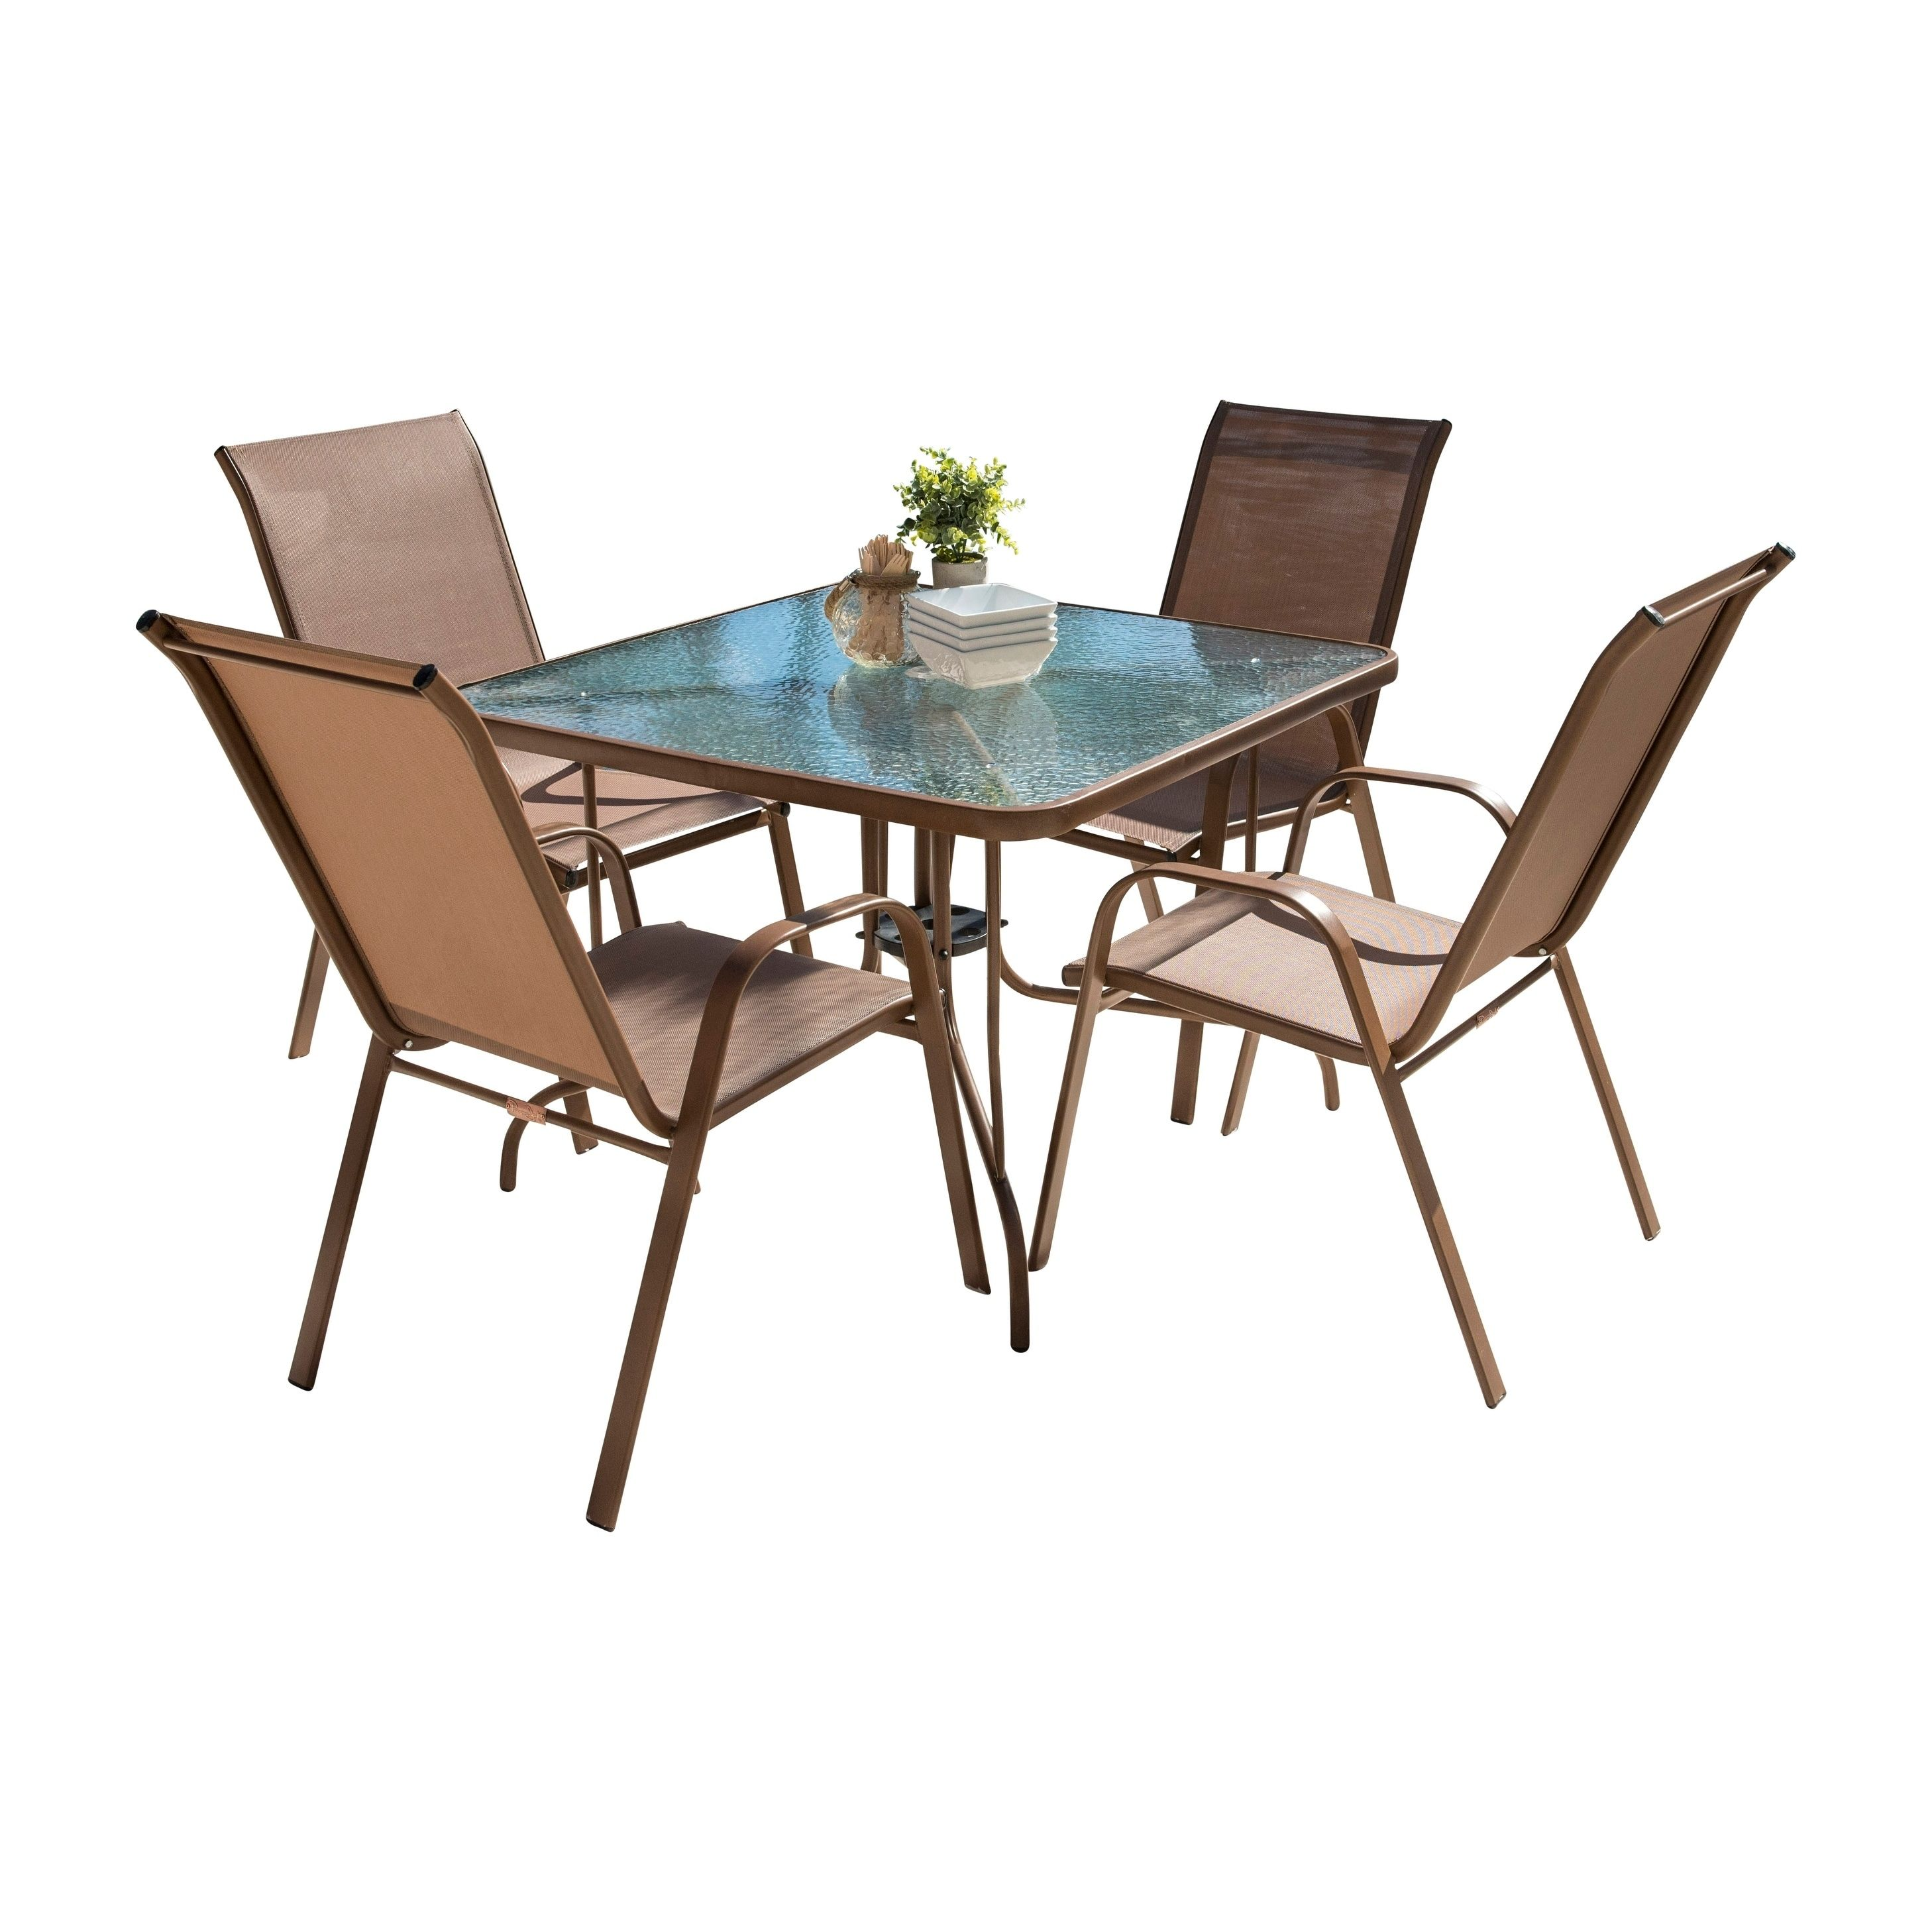 Panama Jack Cafe 5 PC High Back Sling Dining Set, Brown, Patio Furniture (